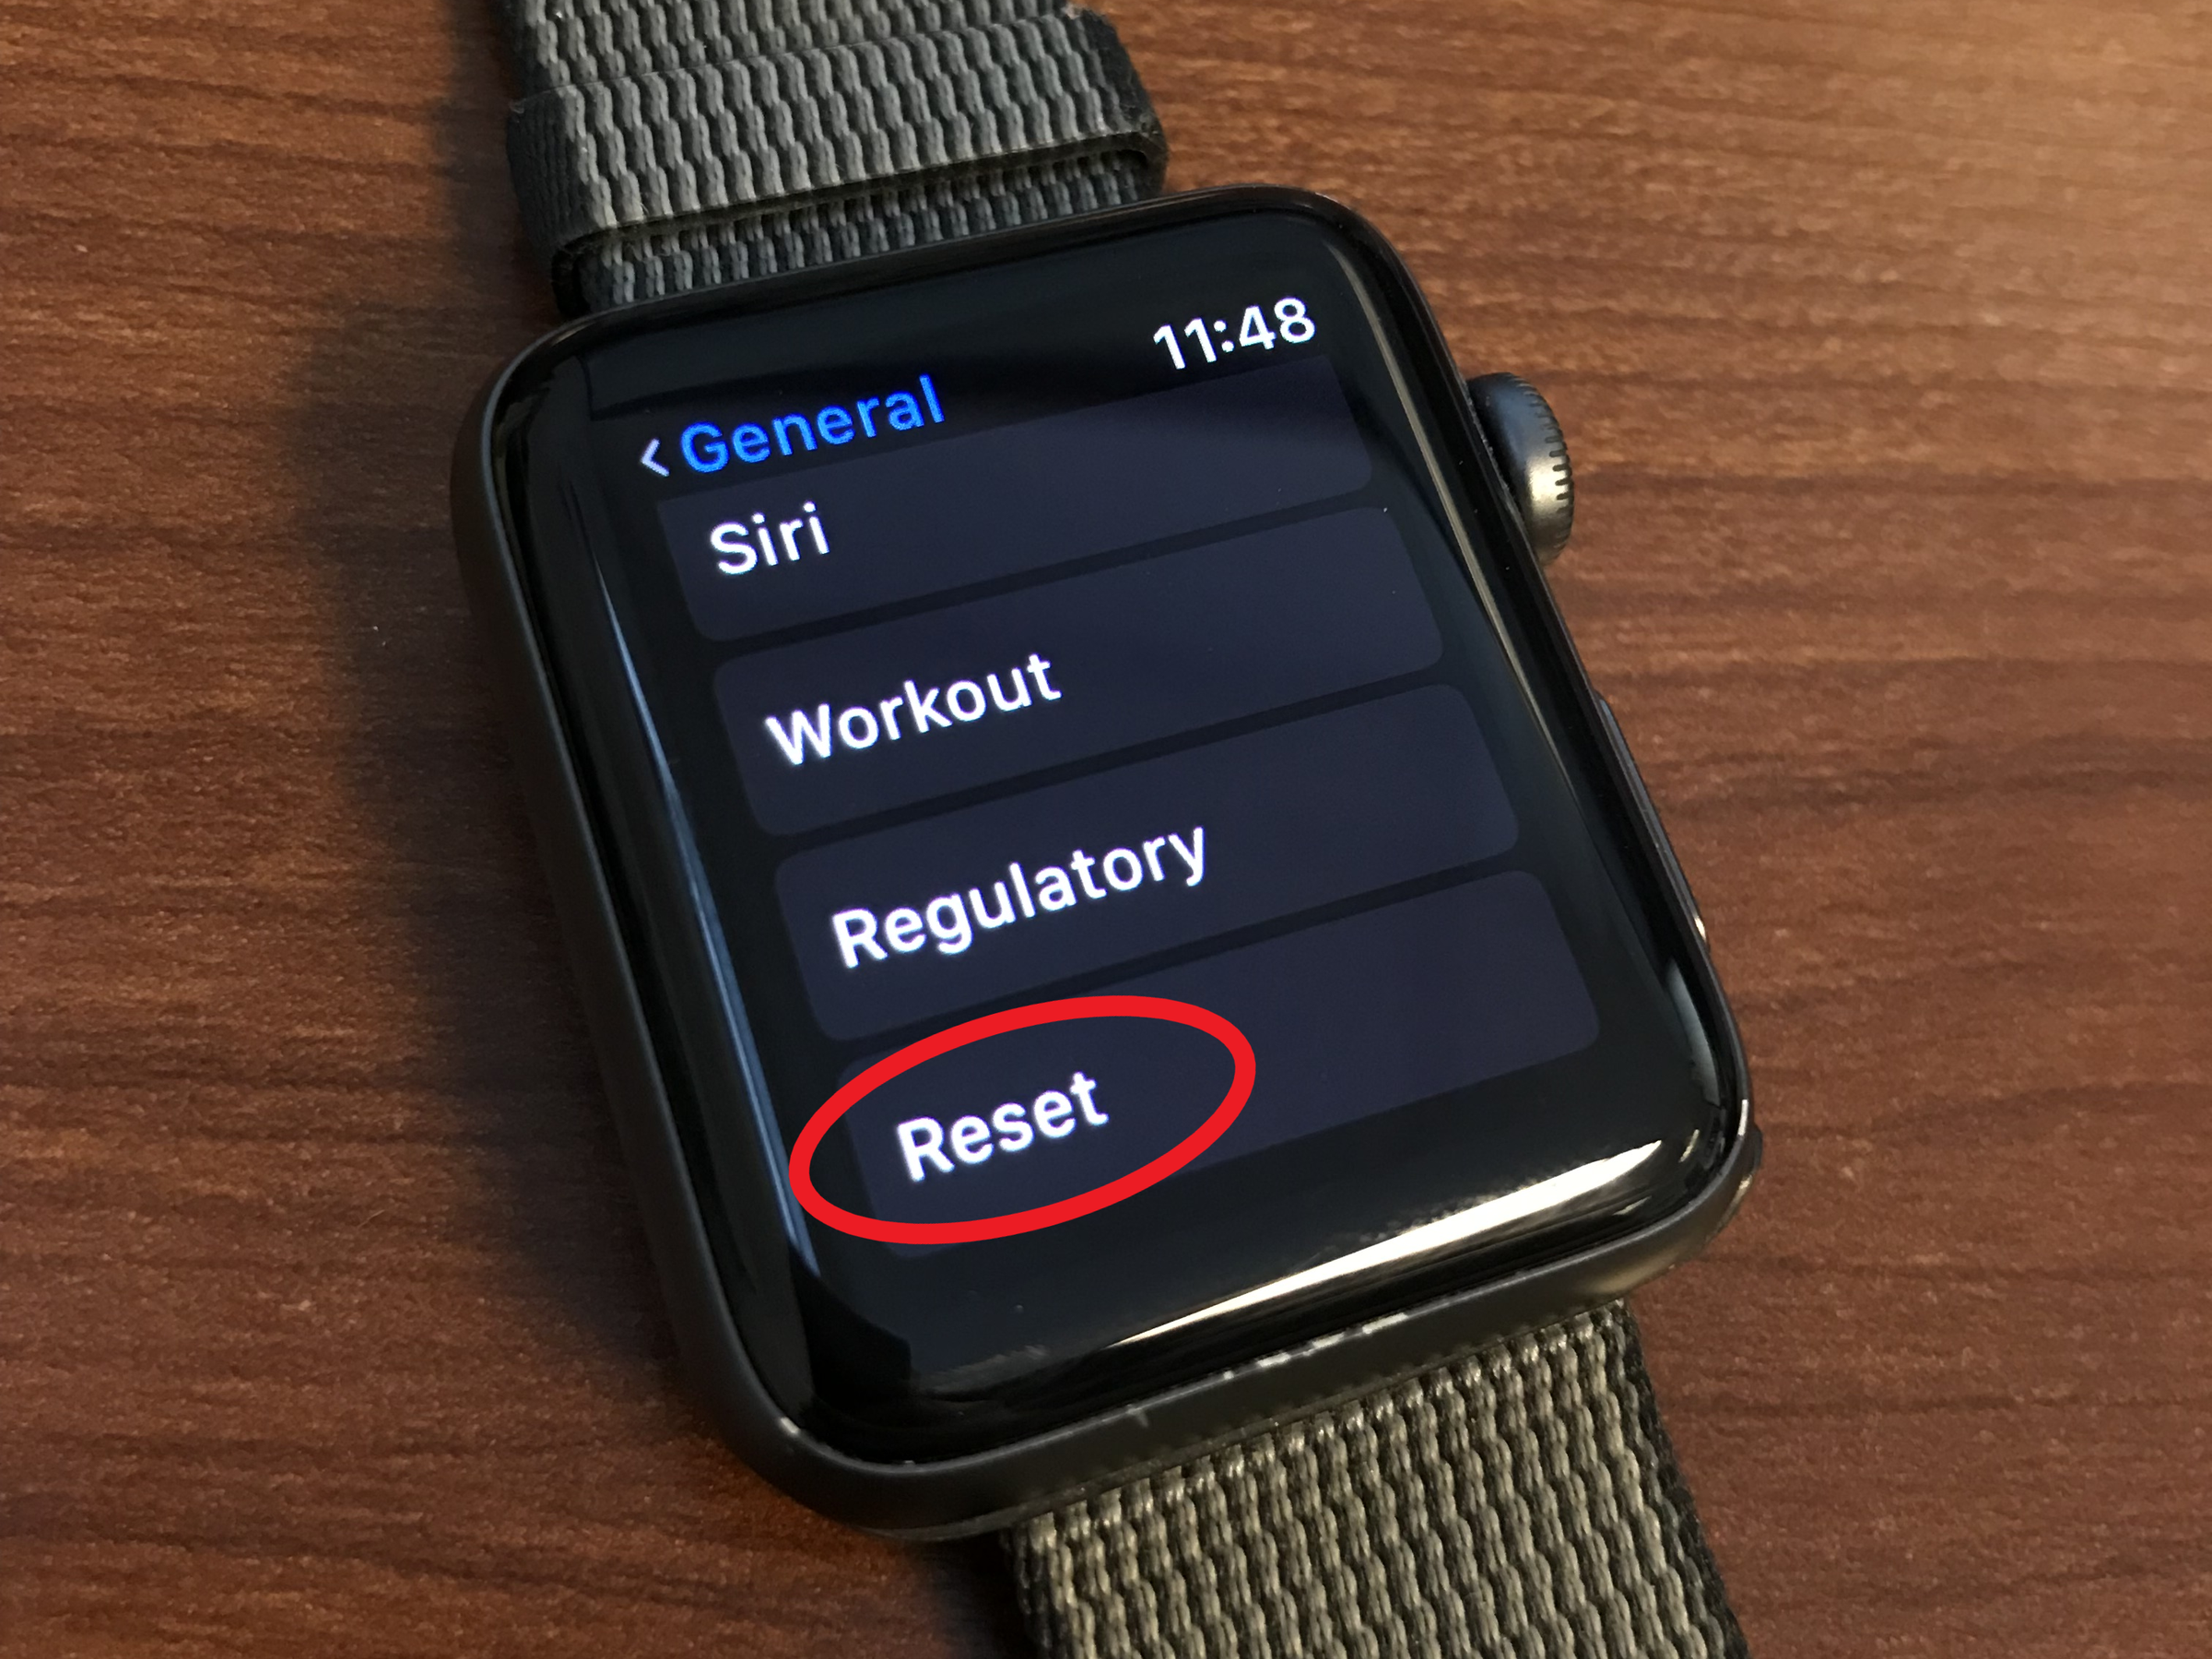 how to manually unpair apple watch 2 series without iphone